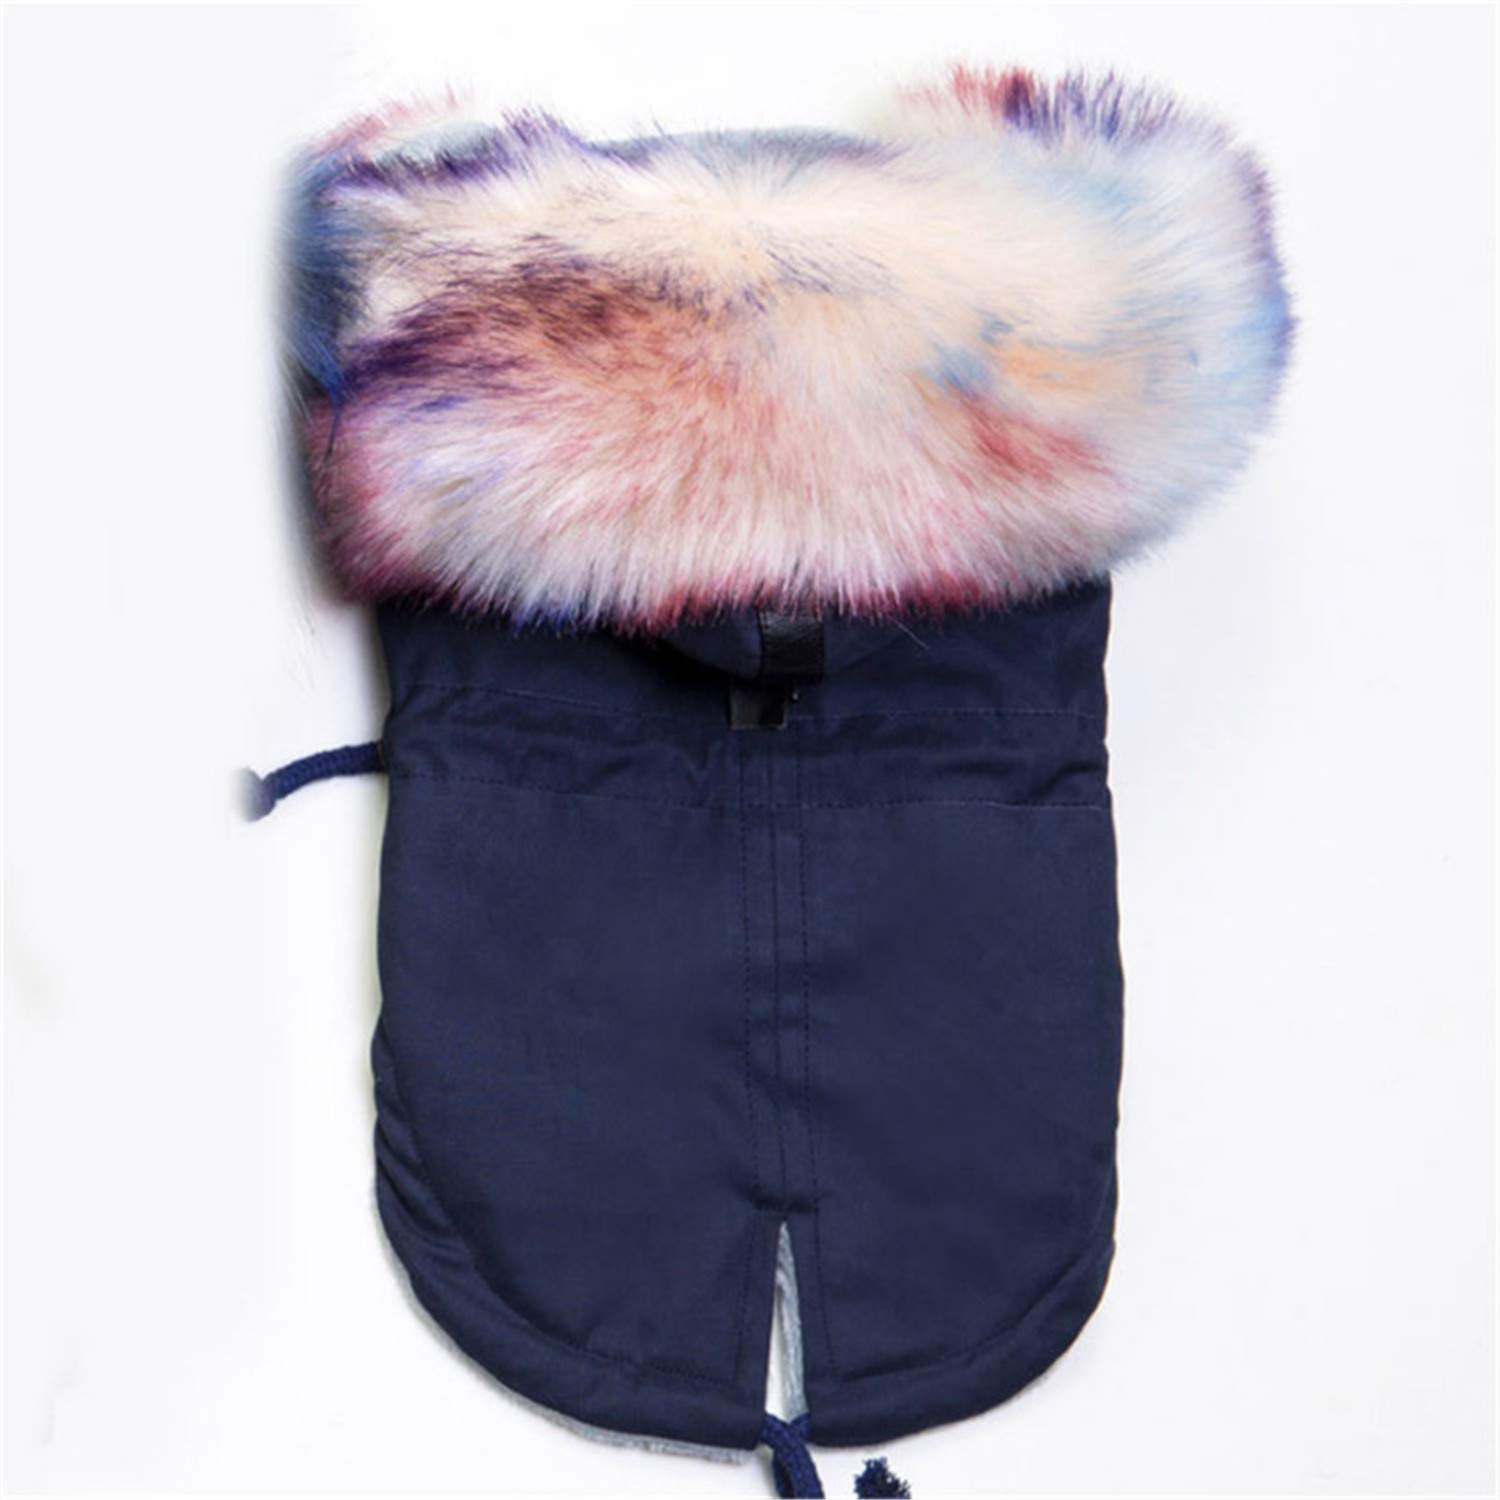 Navy bluee S navy bluee S Winter Dog Clothes Luxury Faux Fur Collar Dog Coat for Small Dog Warm Windproof Pet Parka Fleece Lined Pu